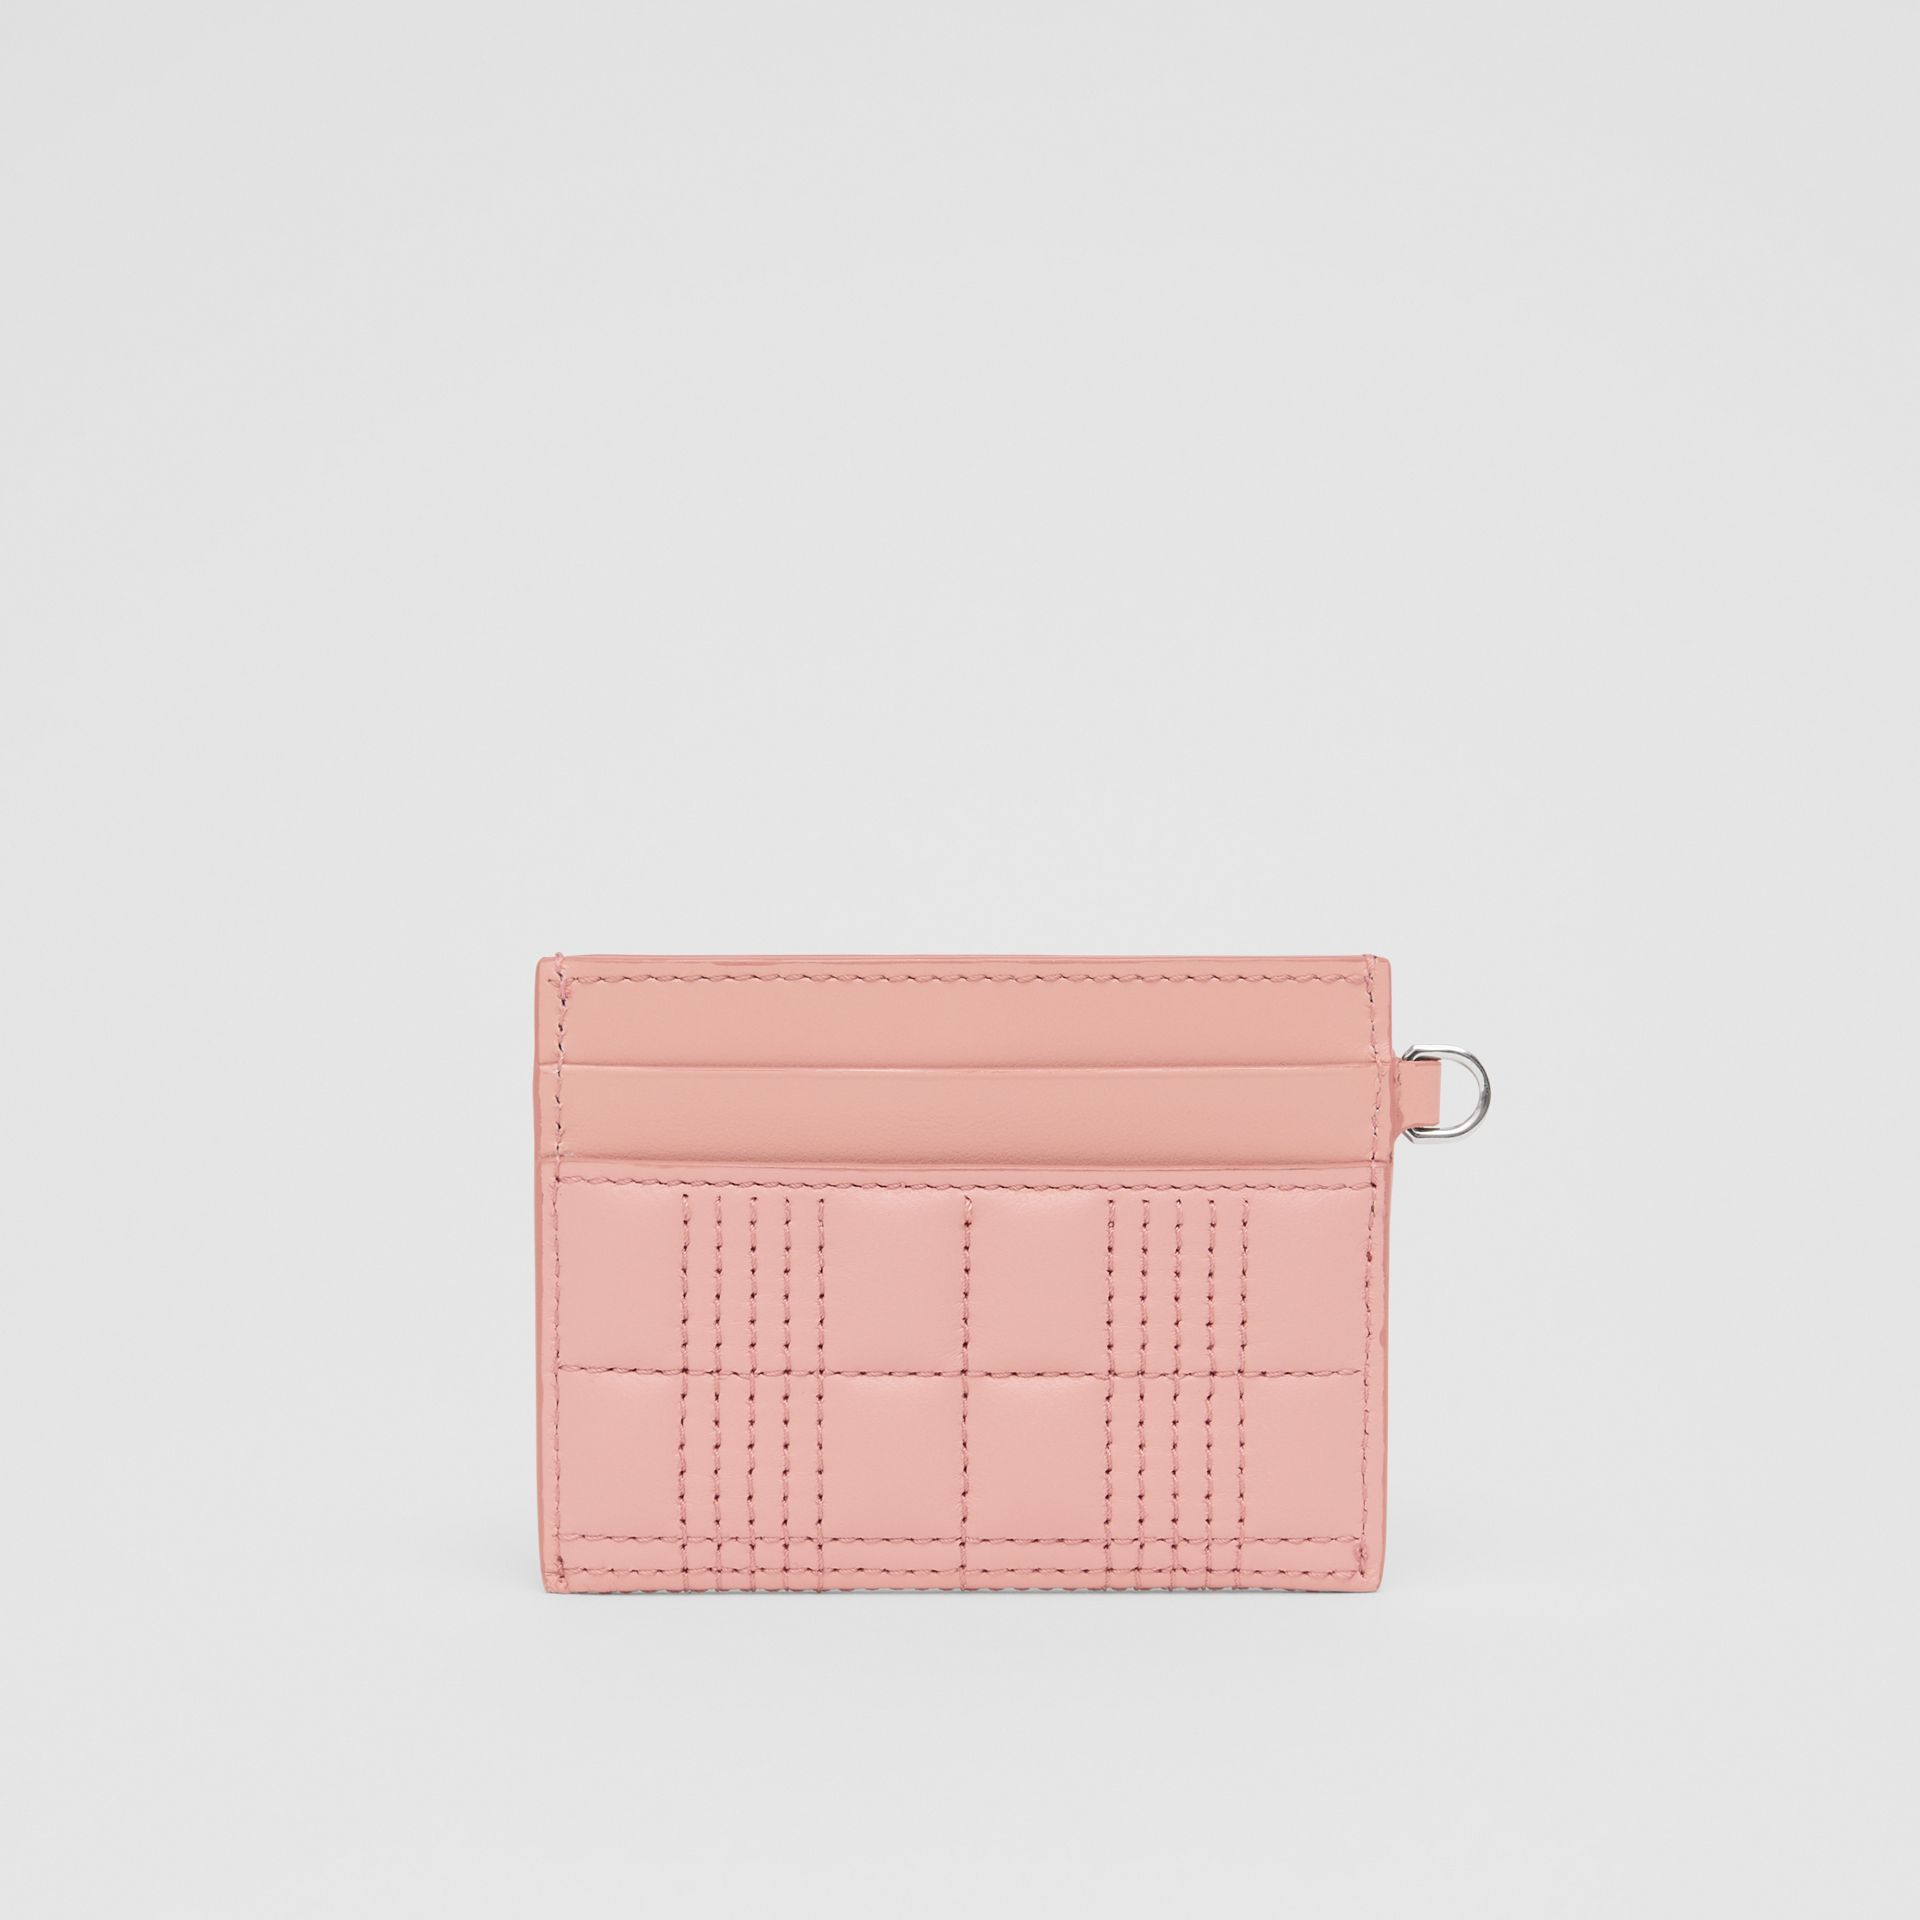 Monogram Motif Quilted Lambskin Card Case in Blush Pink - Women | Burberry - gallery image 4